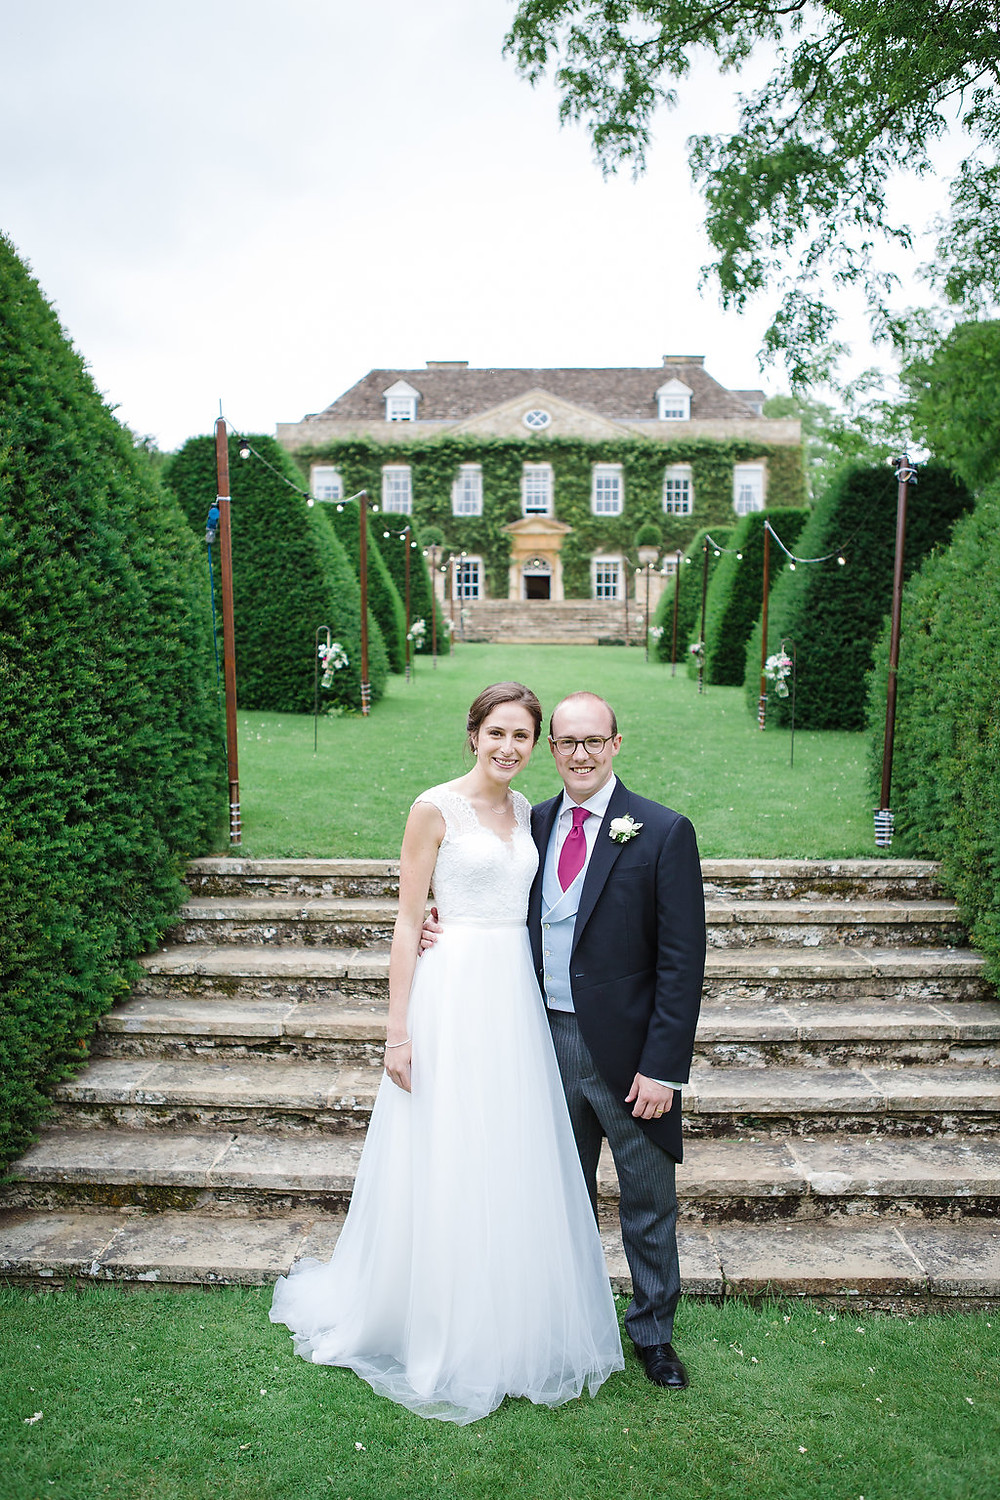 Natalia and Tom at Cornwell Manor